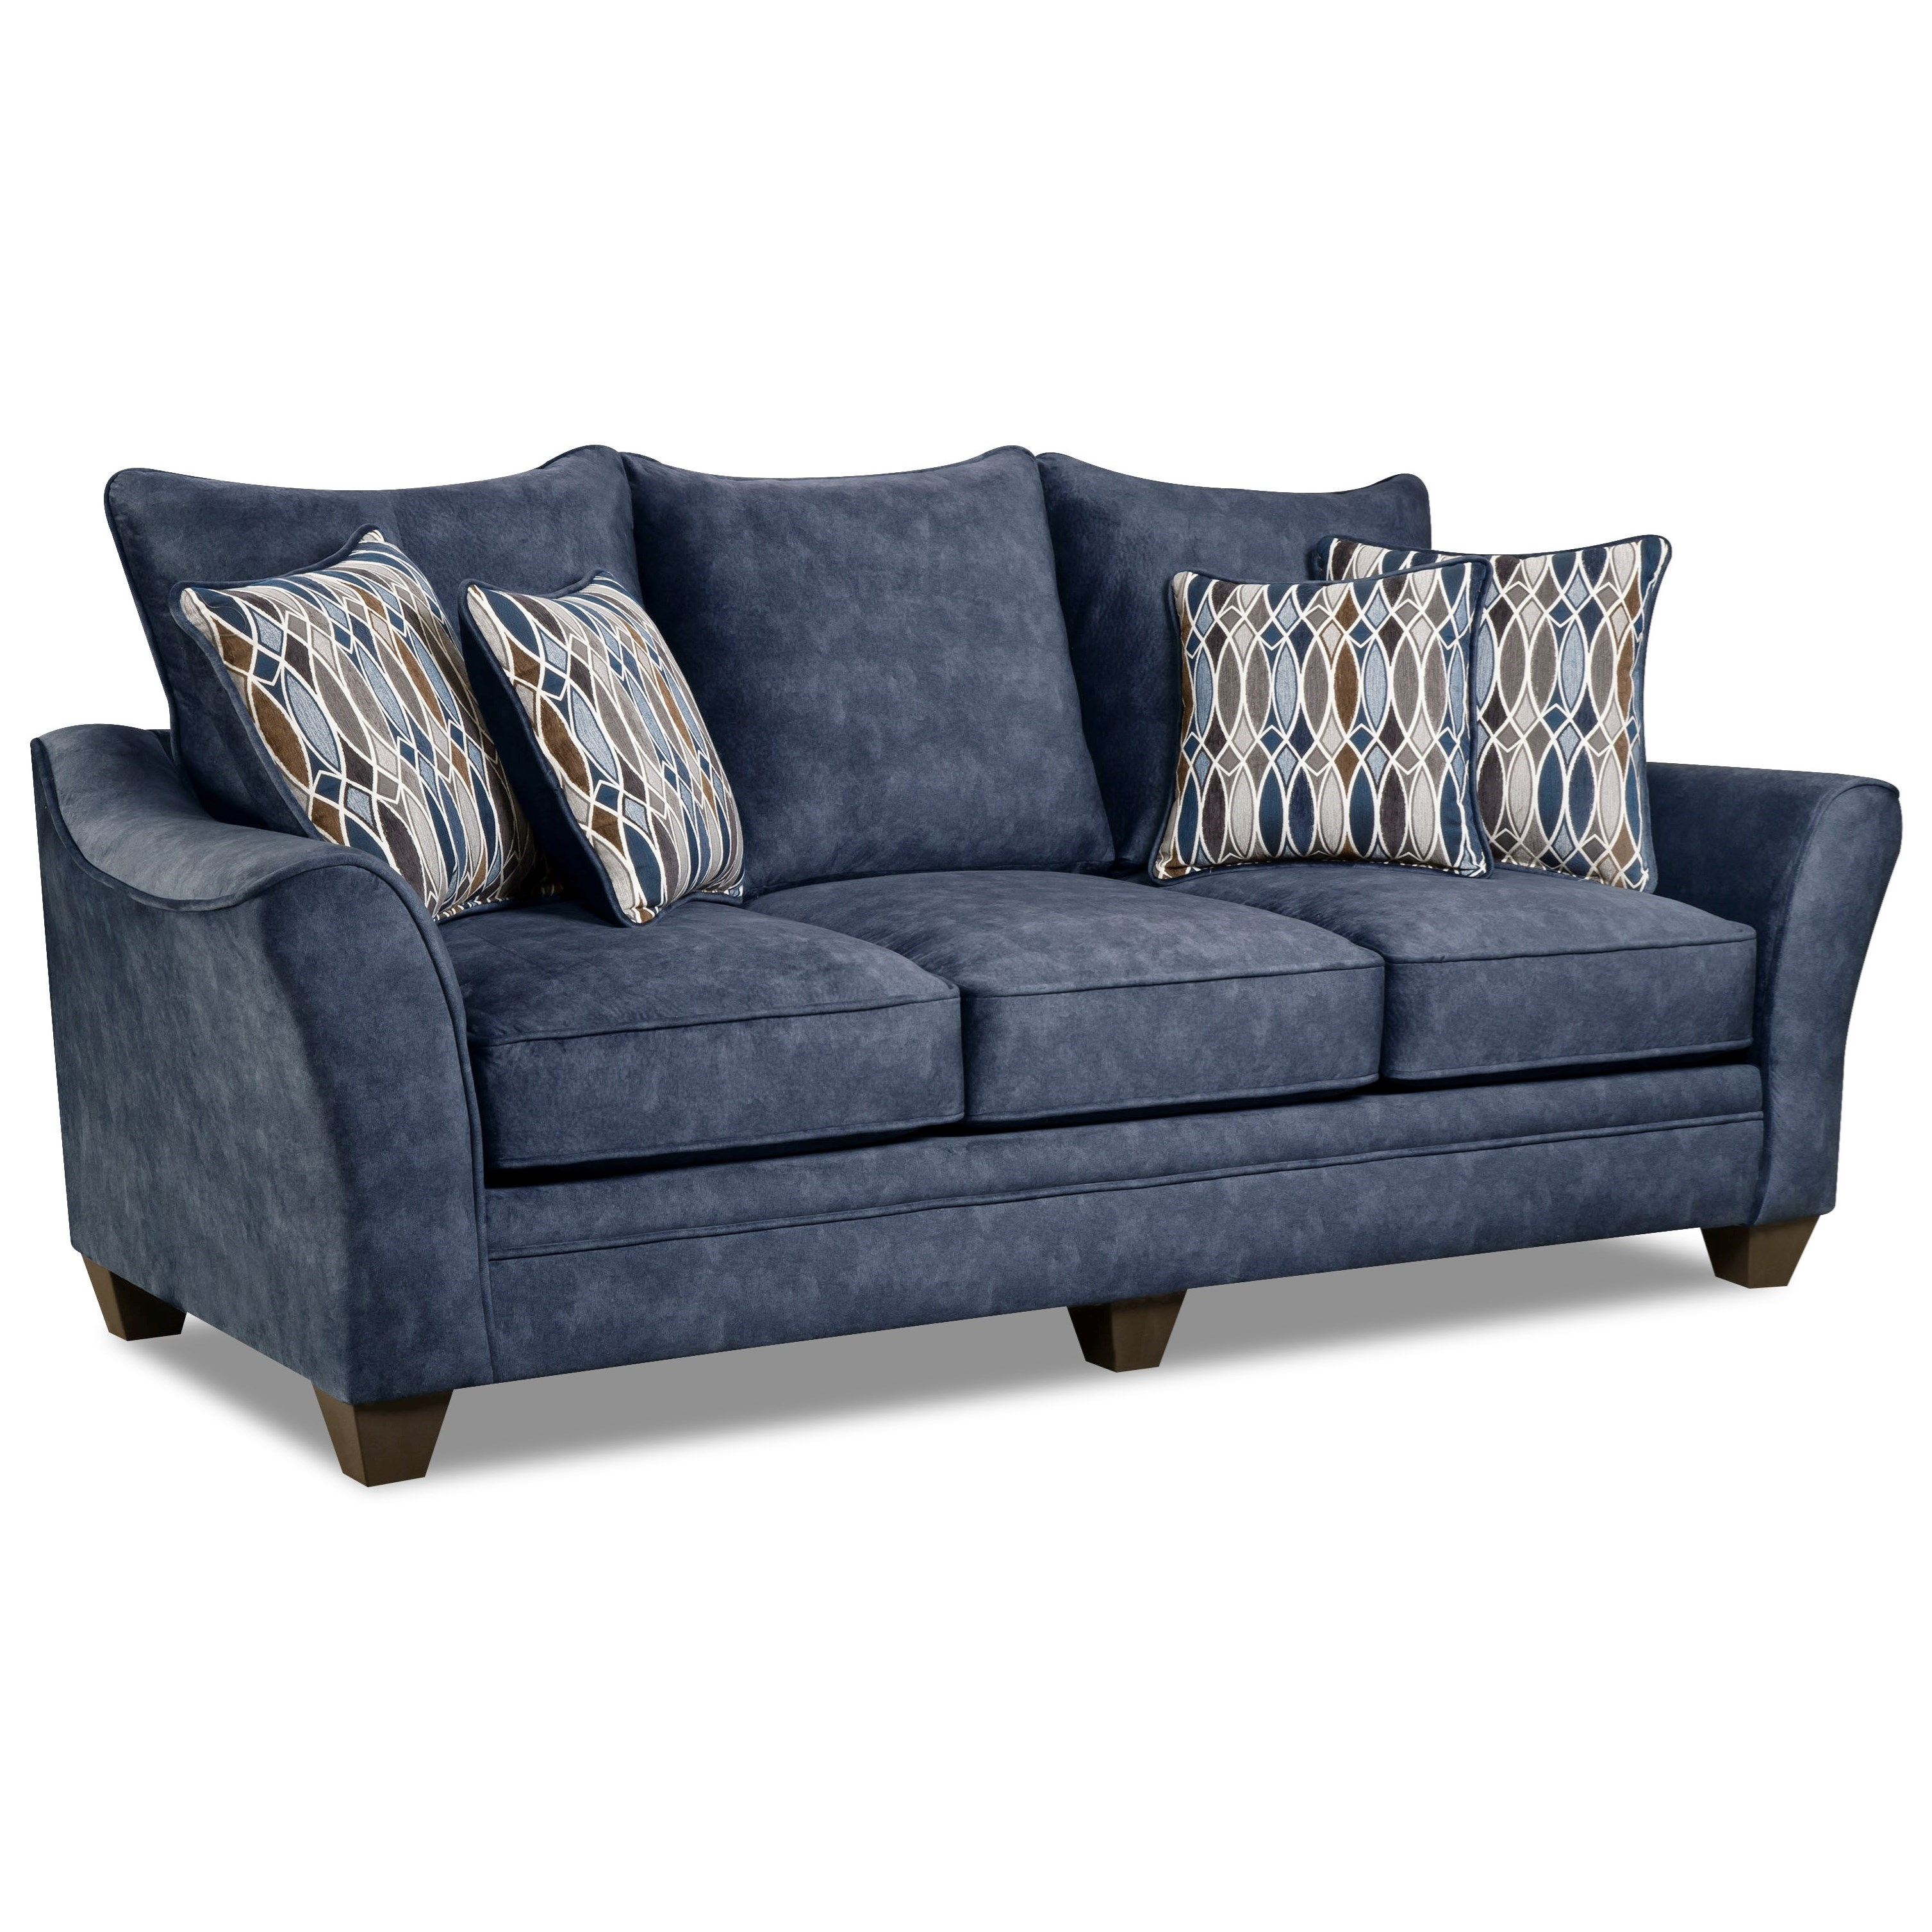 American furniture 3850 3853 athena navy elegant sofa with for American home furniture couches